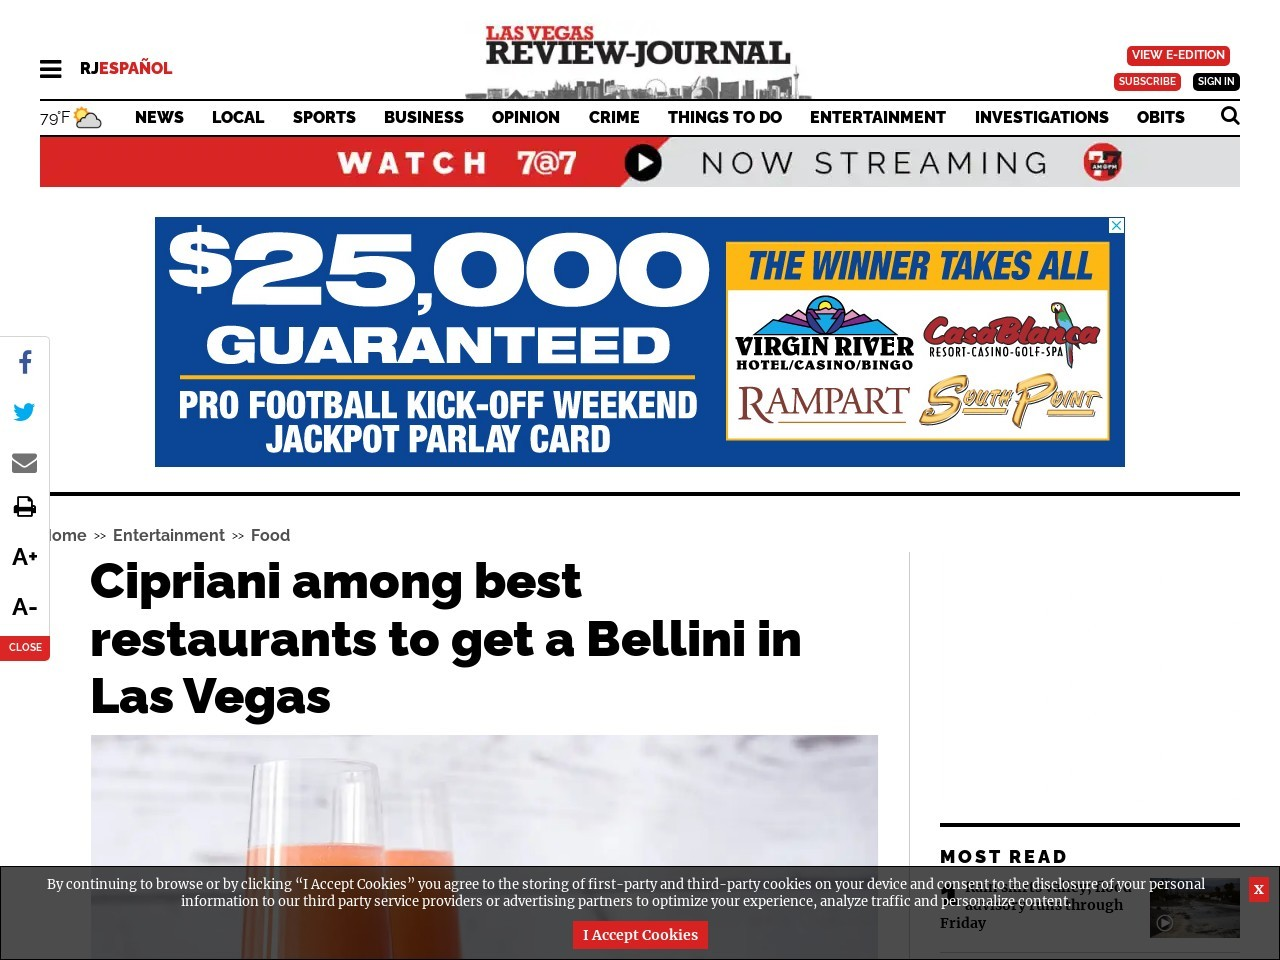 Cipriani among best restaurants to get a Bellini in Las Vegas